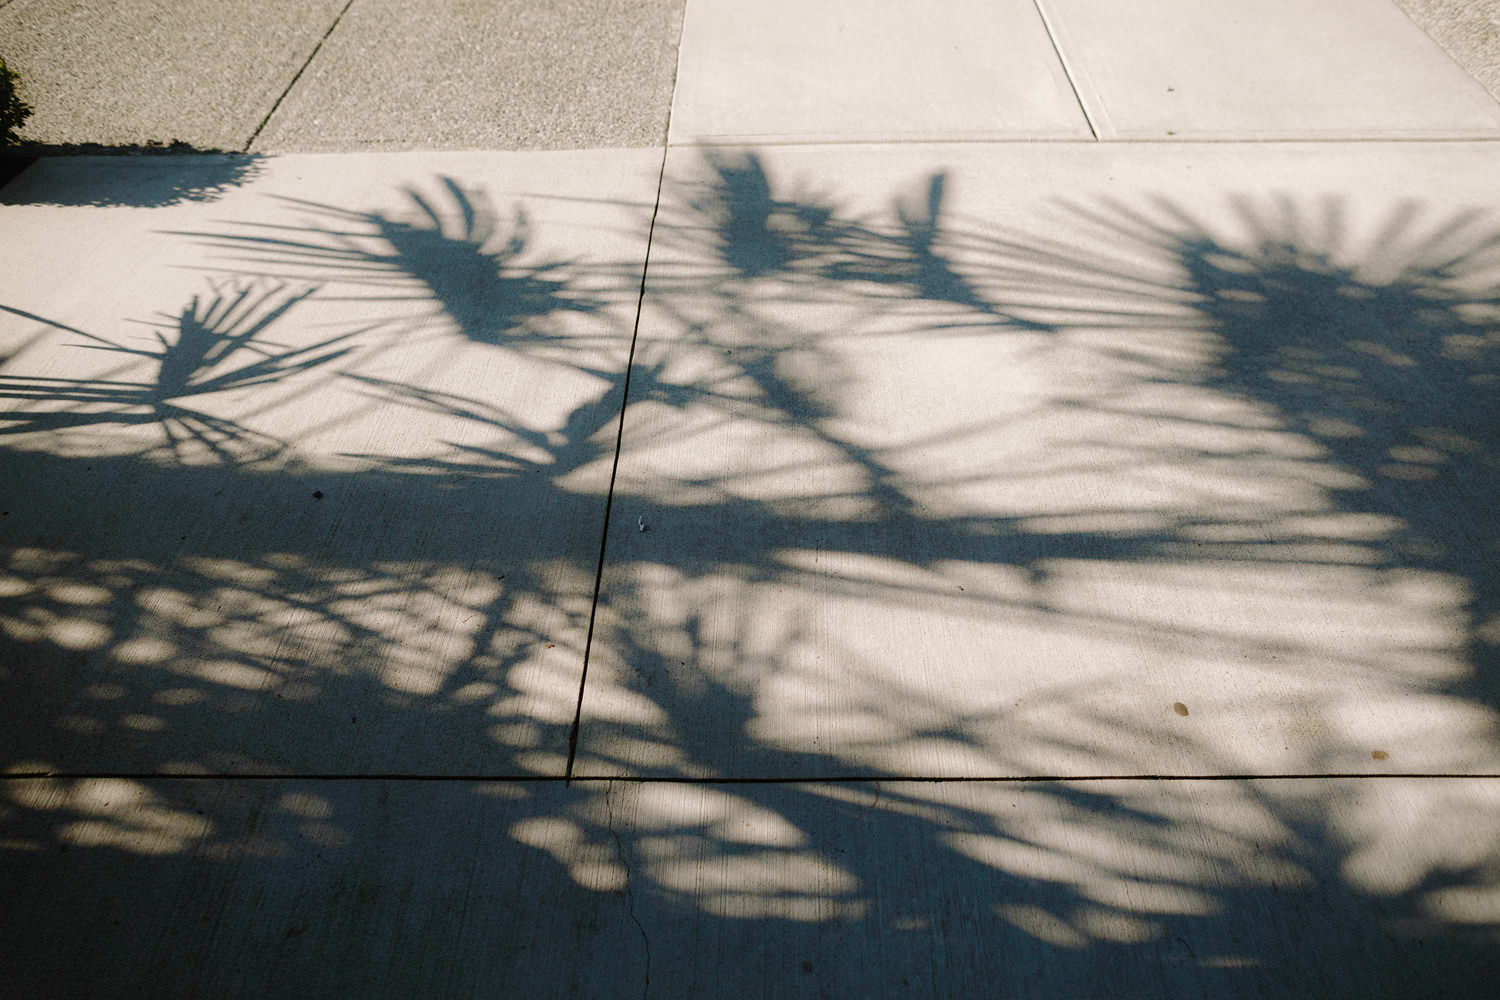 shadows of palm trees on pavement in vancouver